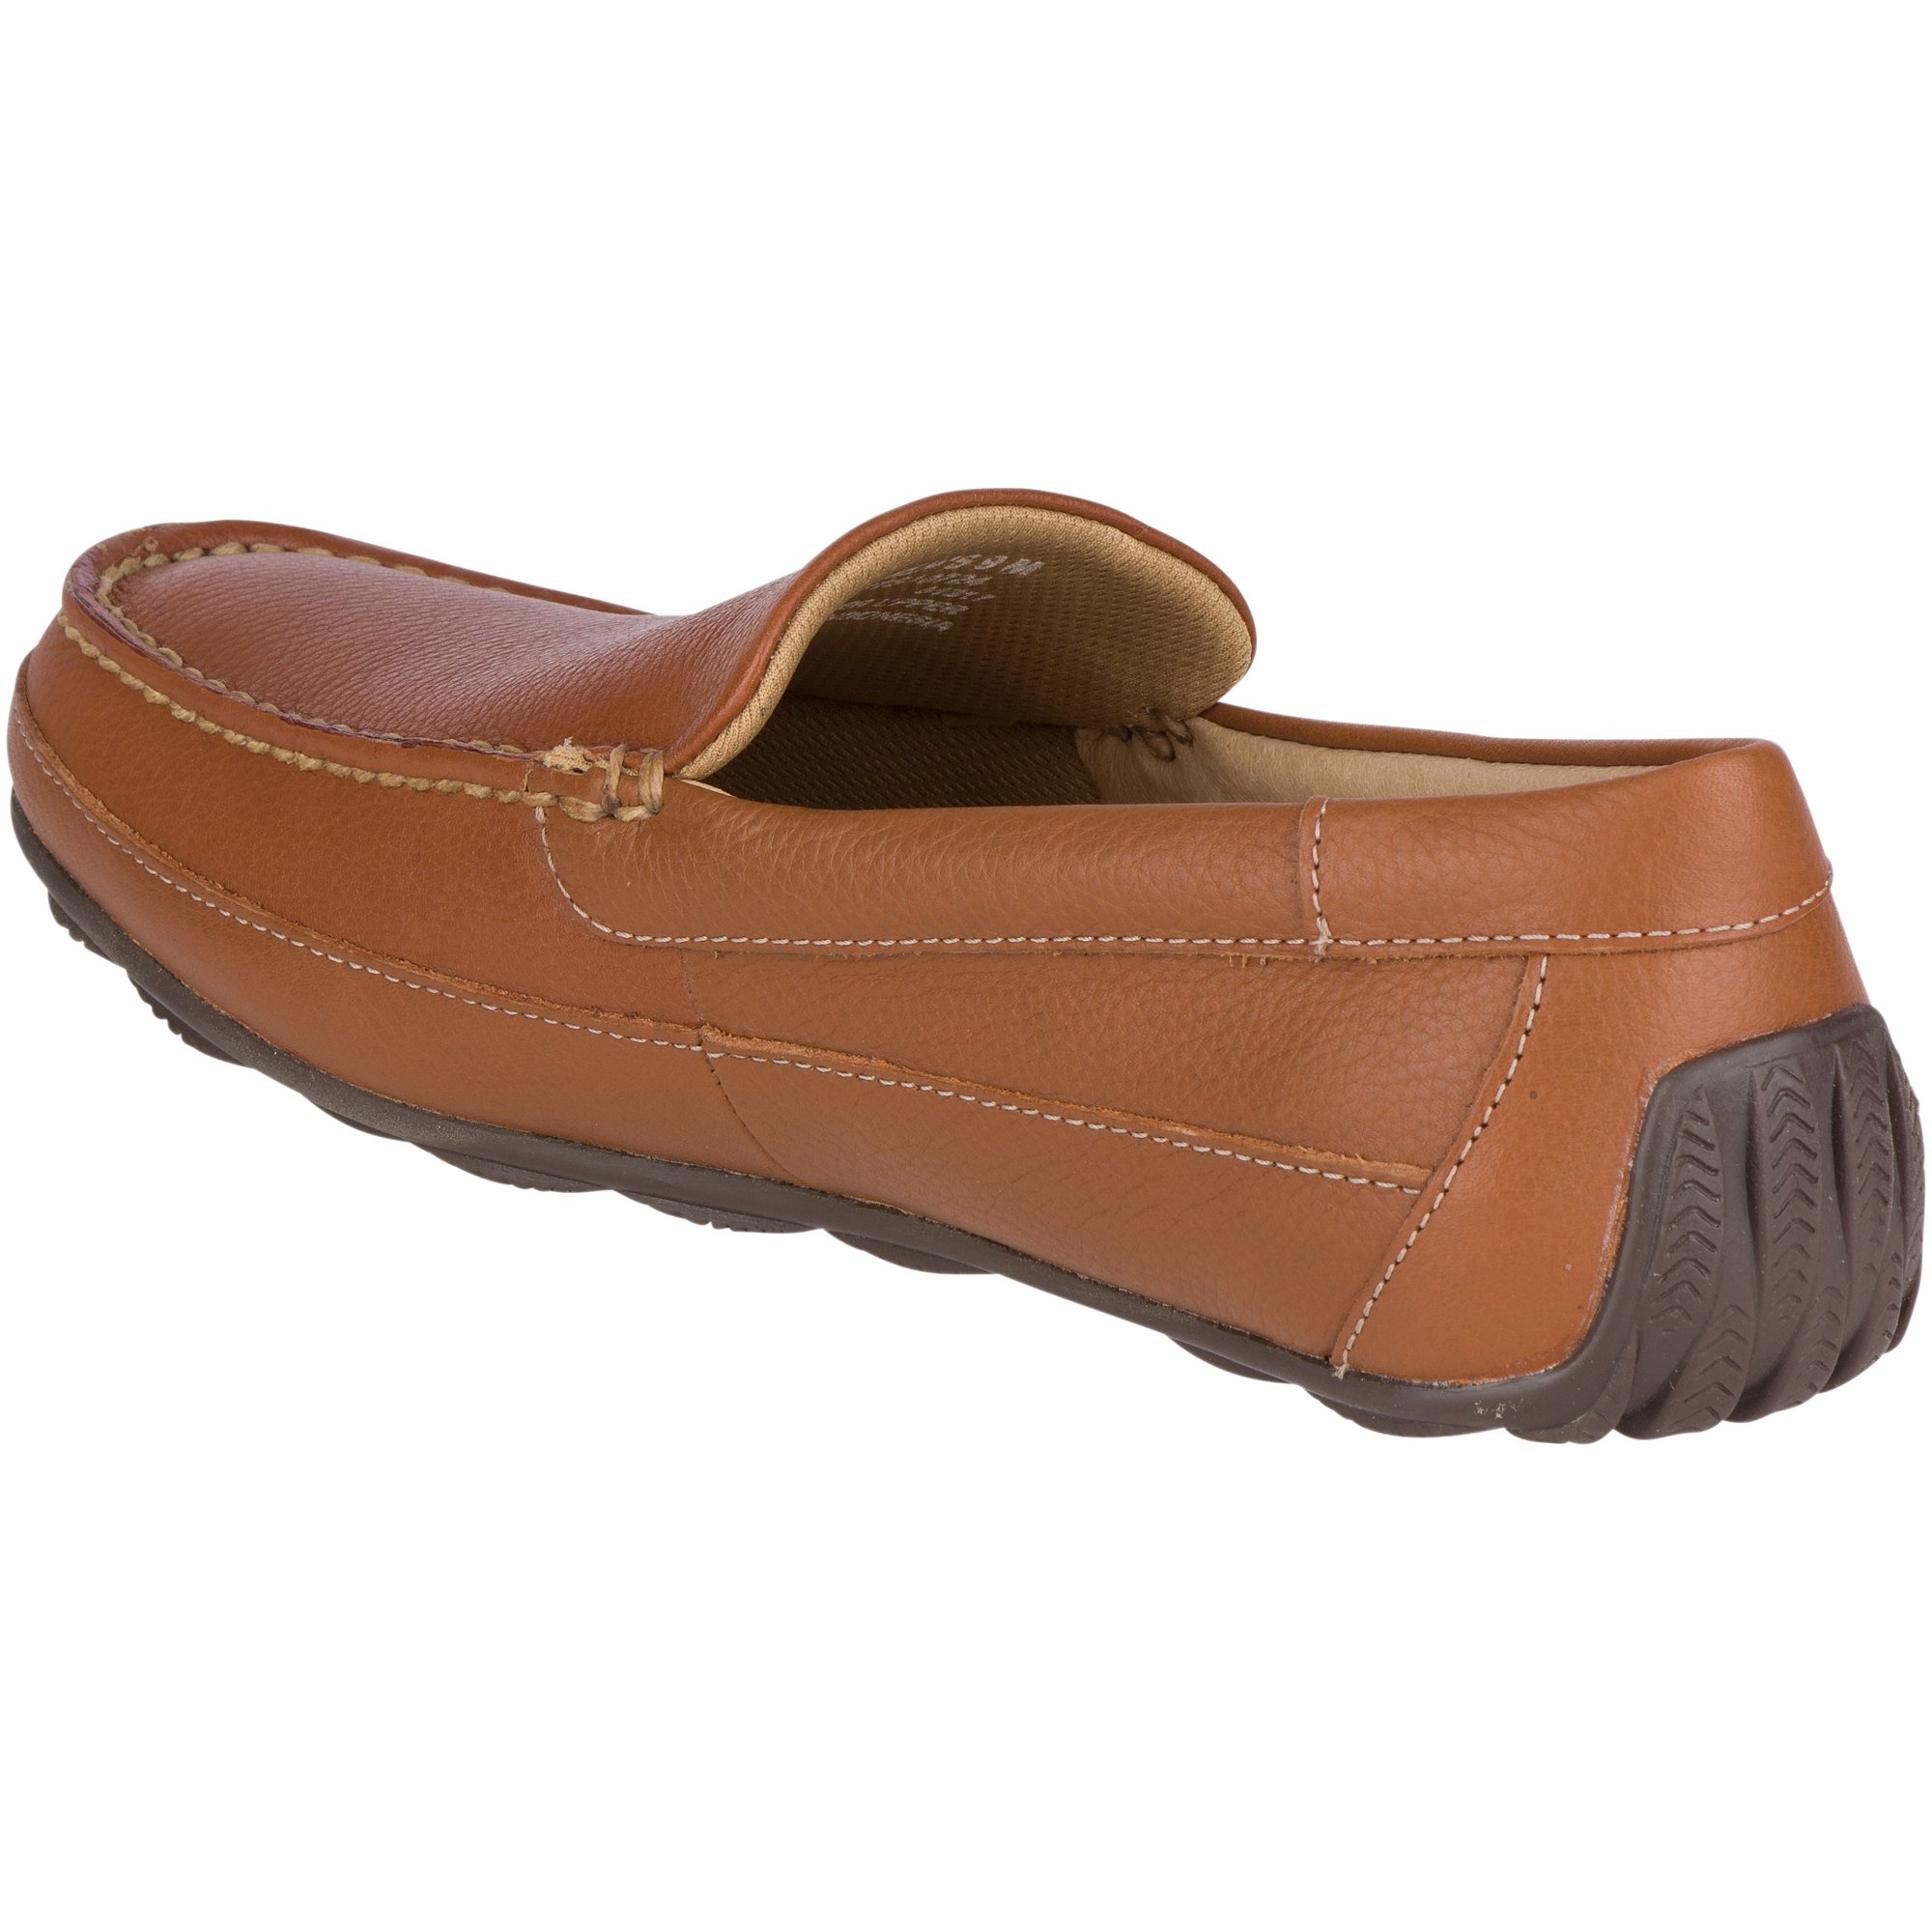 a7236f407 Sperry Men's HAMPDEN VENETIAN Penny Loafers 11.5M | Walmart Canada